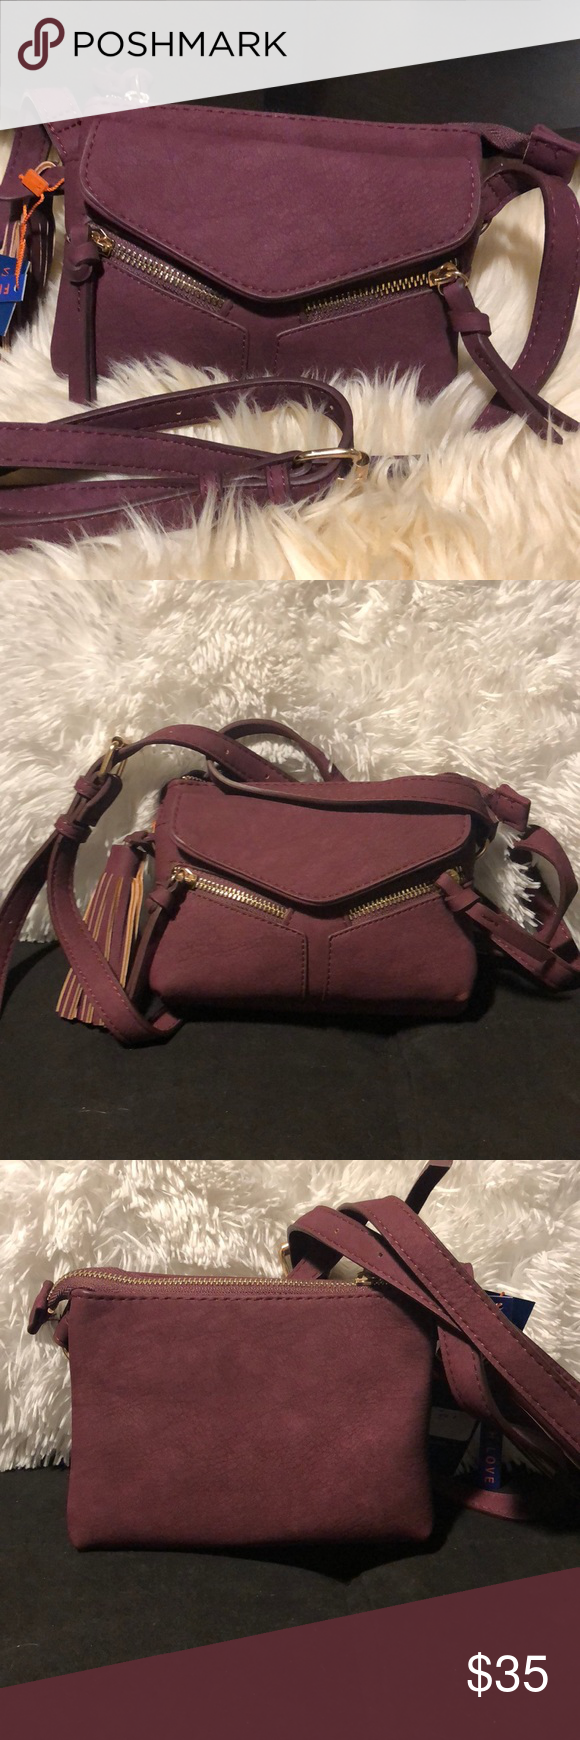 f4fc3bc25745 ... Mini Leanna In Wine From free People line violet ray Faux leather Top  zip closure Shoulder ...